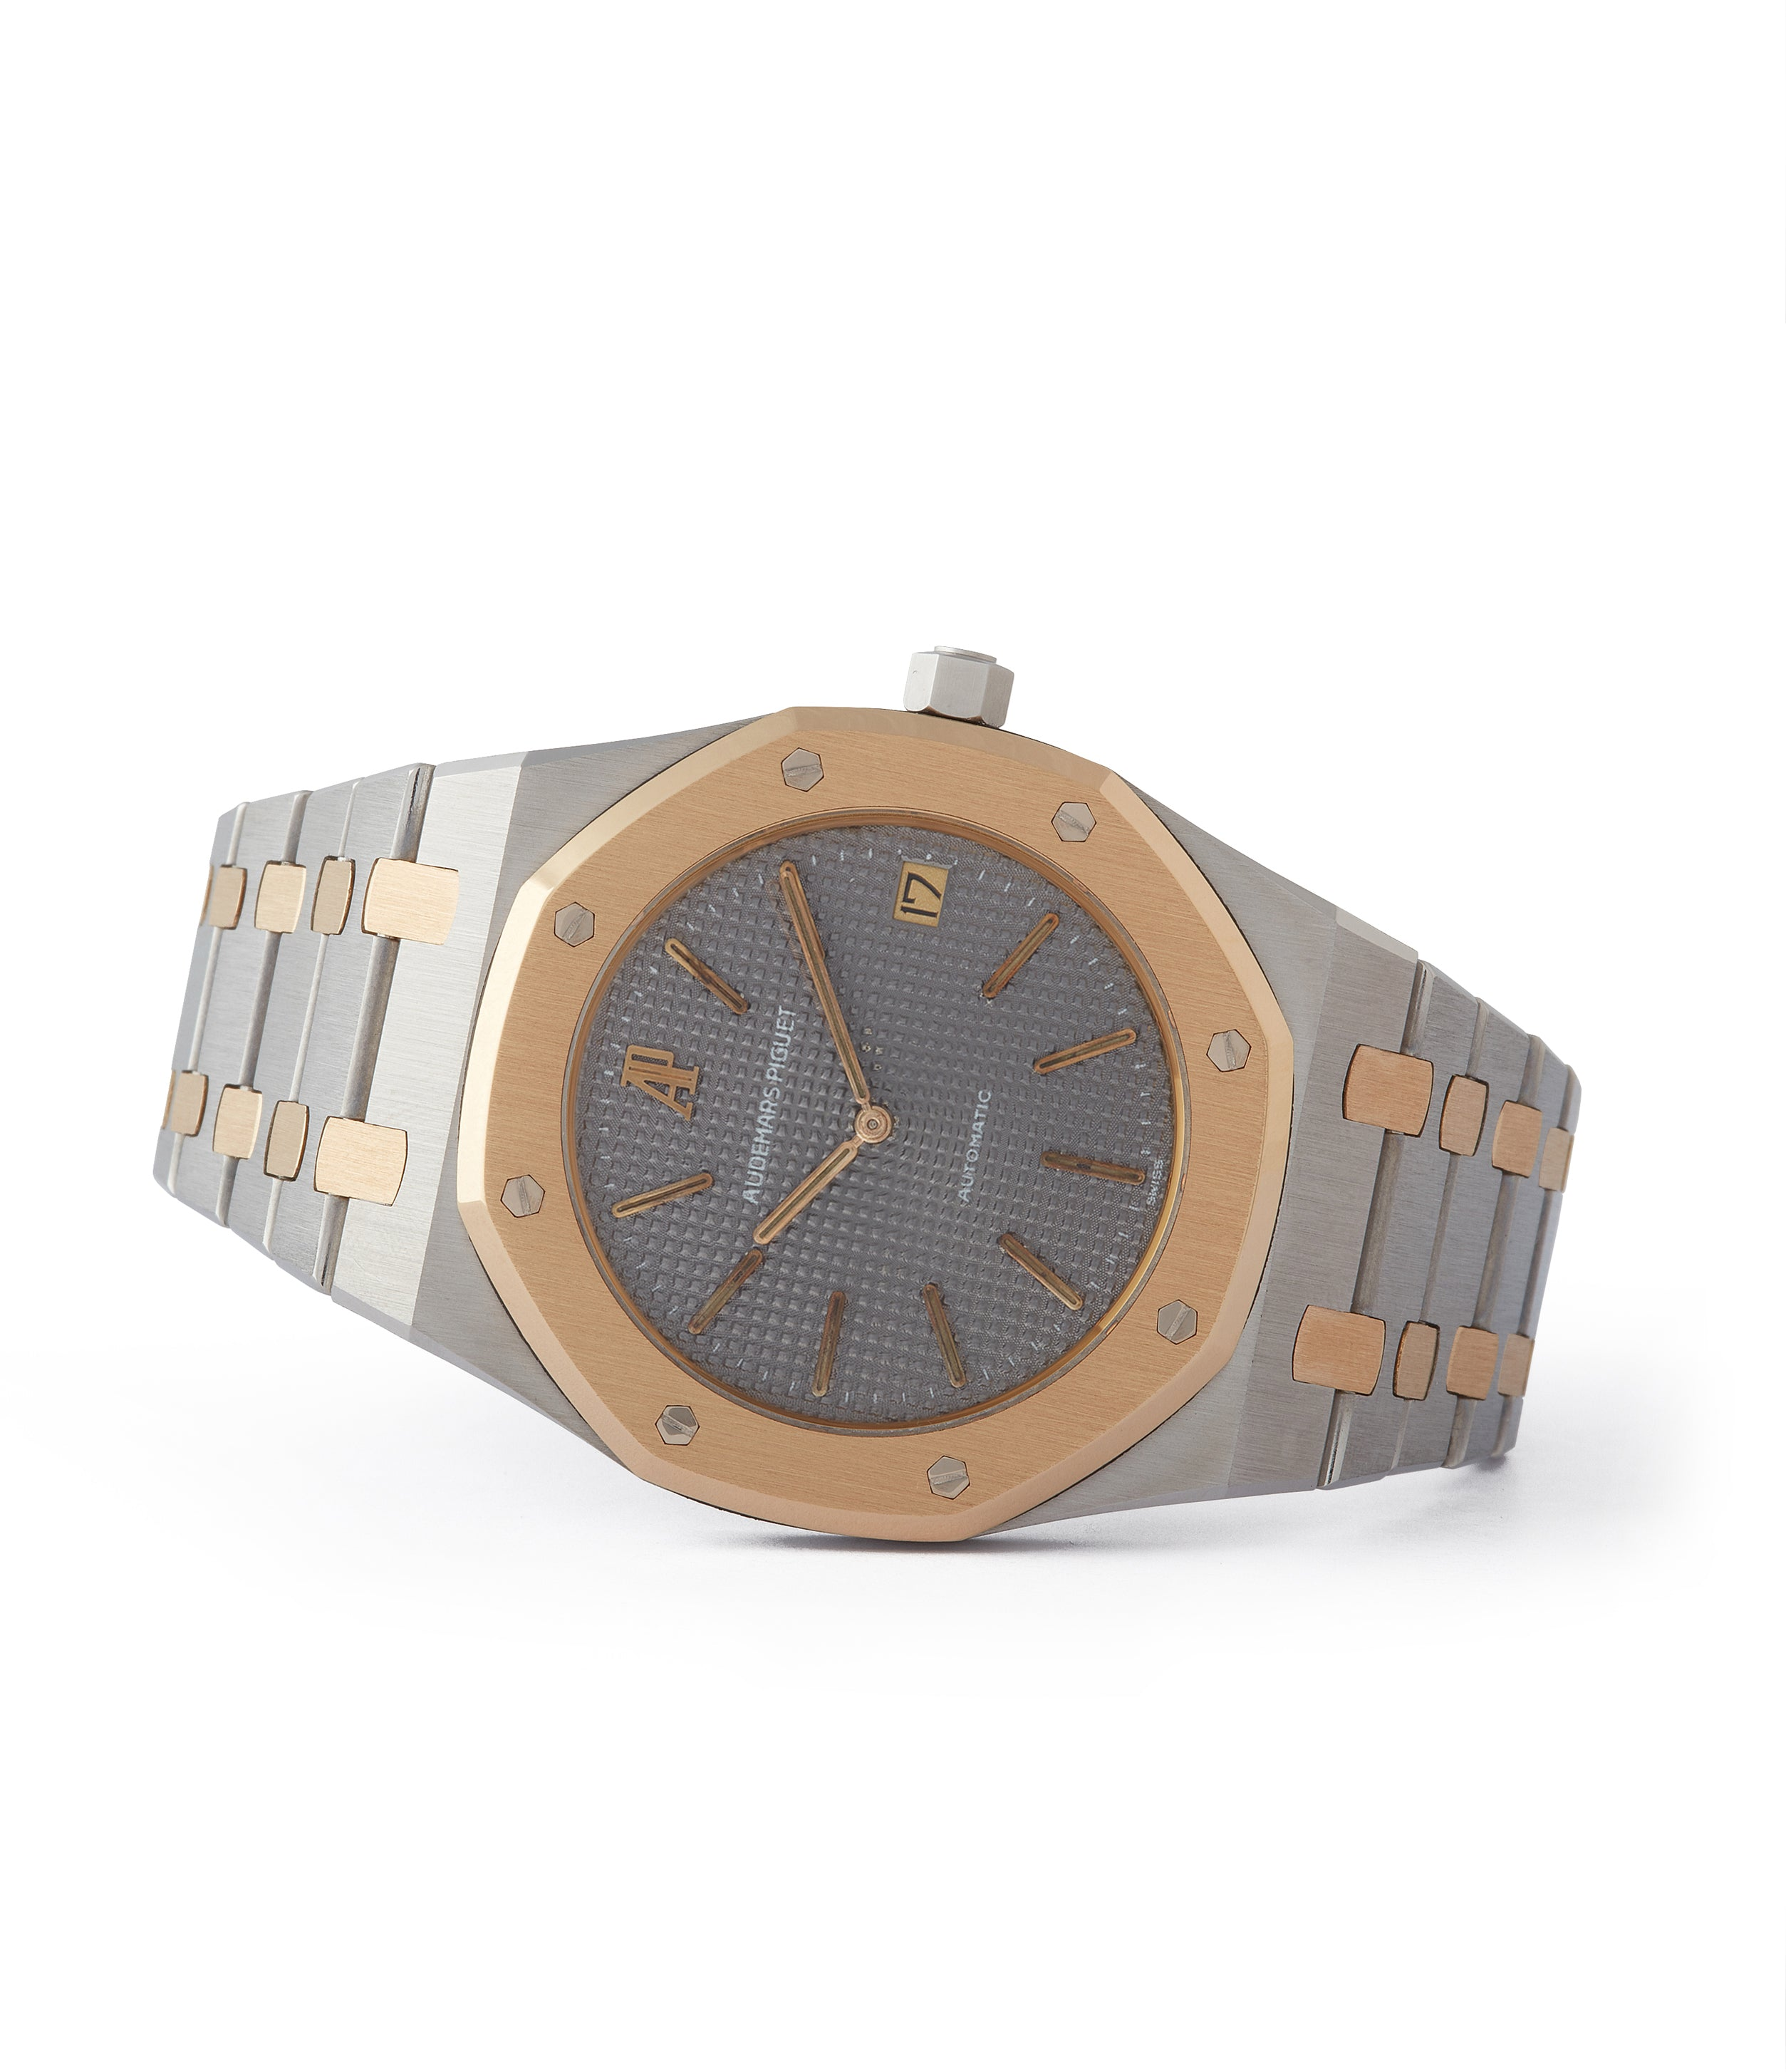 side-shot 5402SA Audemars Piguet Royal Oak steel gold bi-metal sports watch for sale online at A Collected Man London UK specialist of rare watches